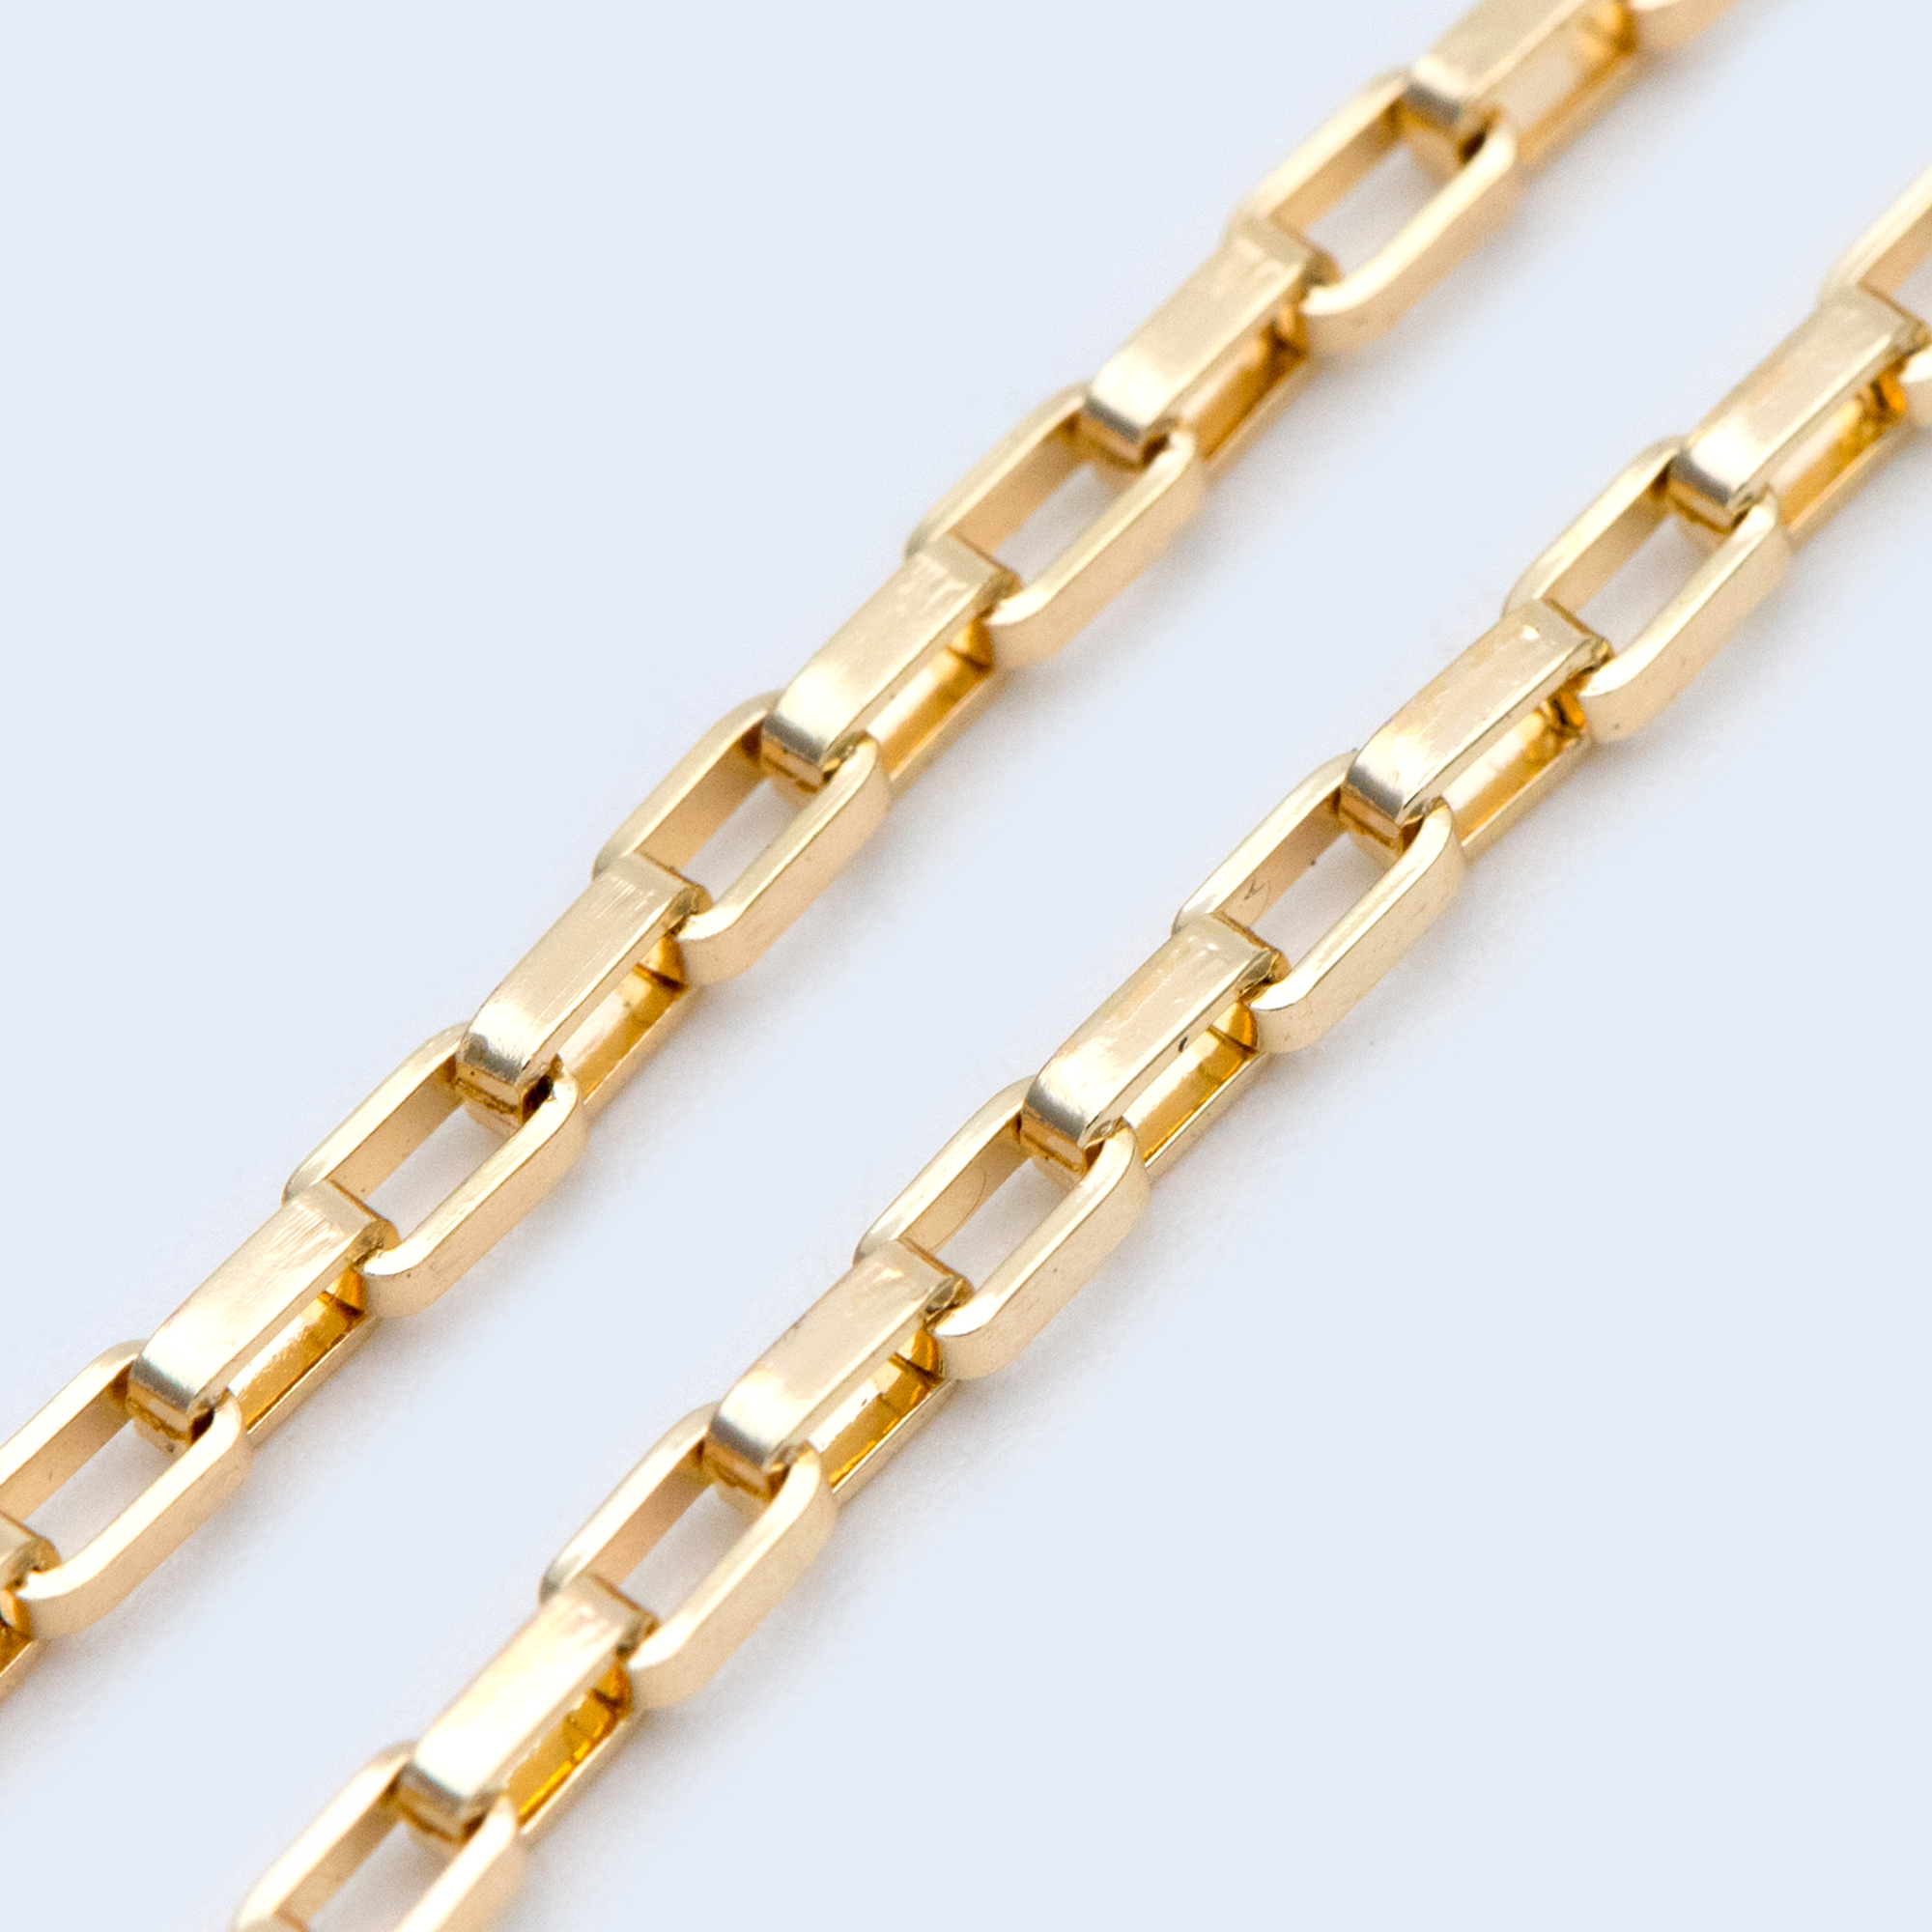 Gold Plated Brass Box Chains 2mm, Box Chain For DIY Necklace Wholesale (#LK-332)/ 1 Meter=3.3 Ft